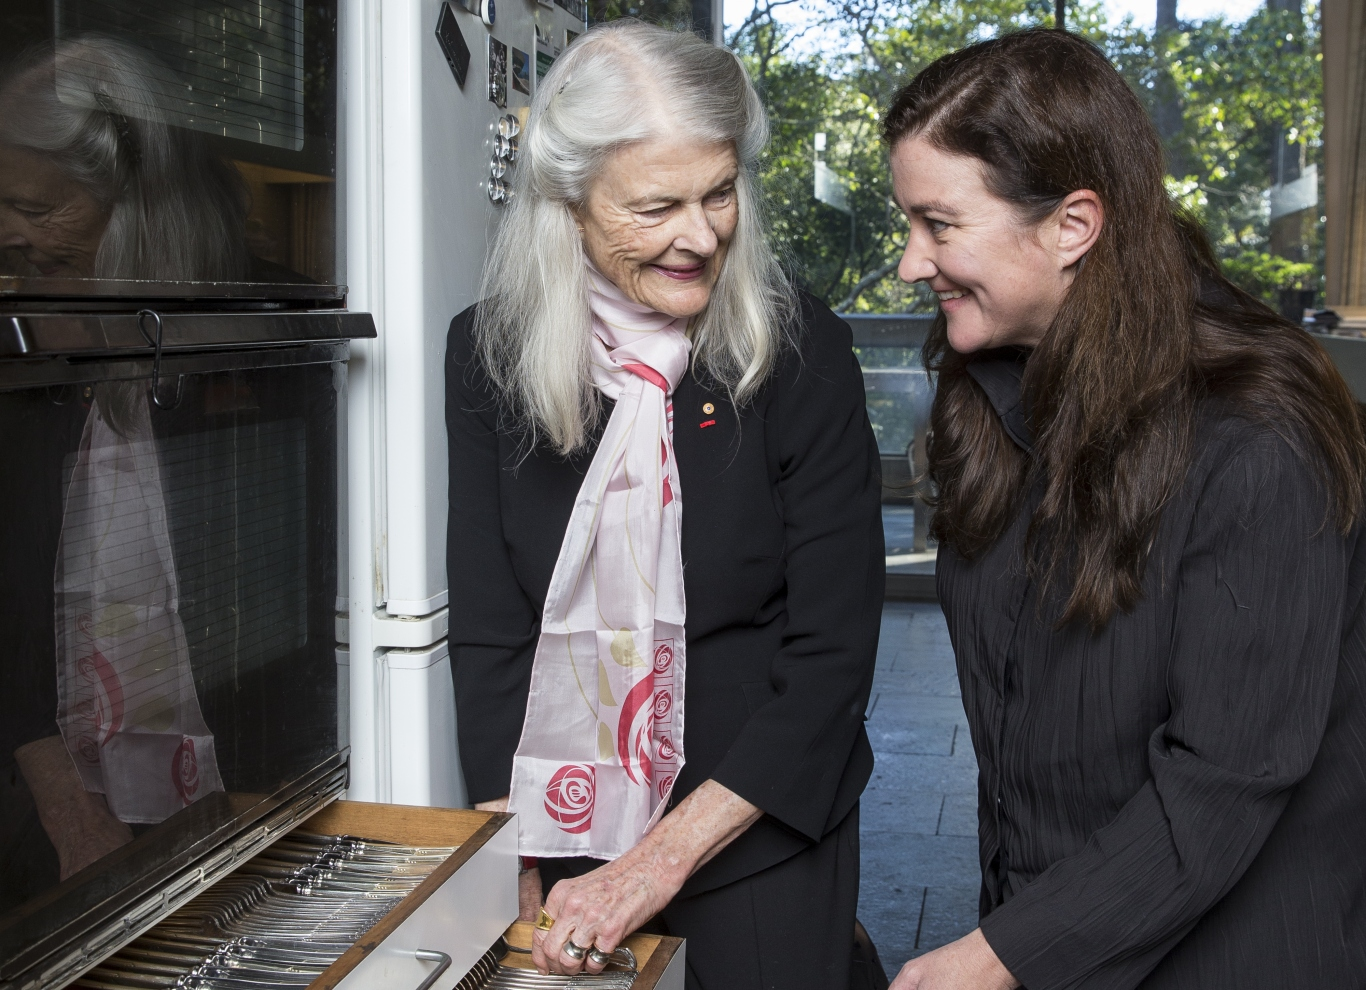 Two women smiling at each other over open cutlery display drawers.